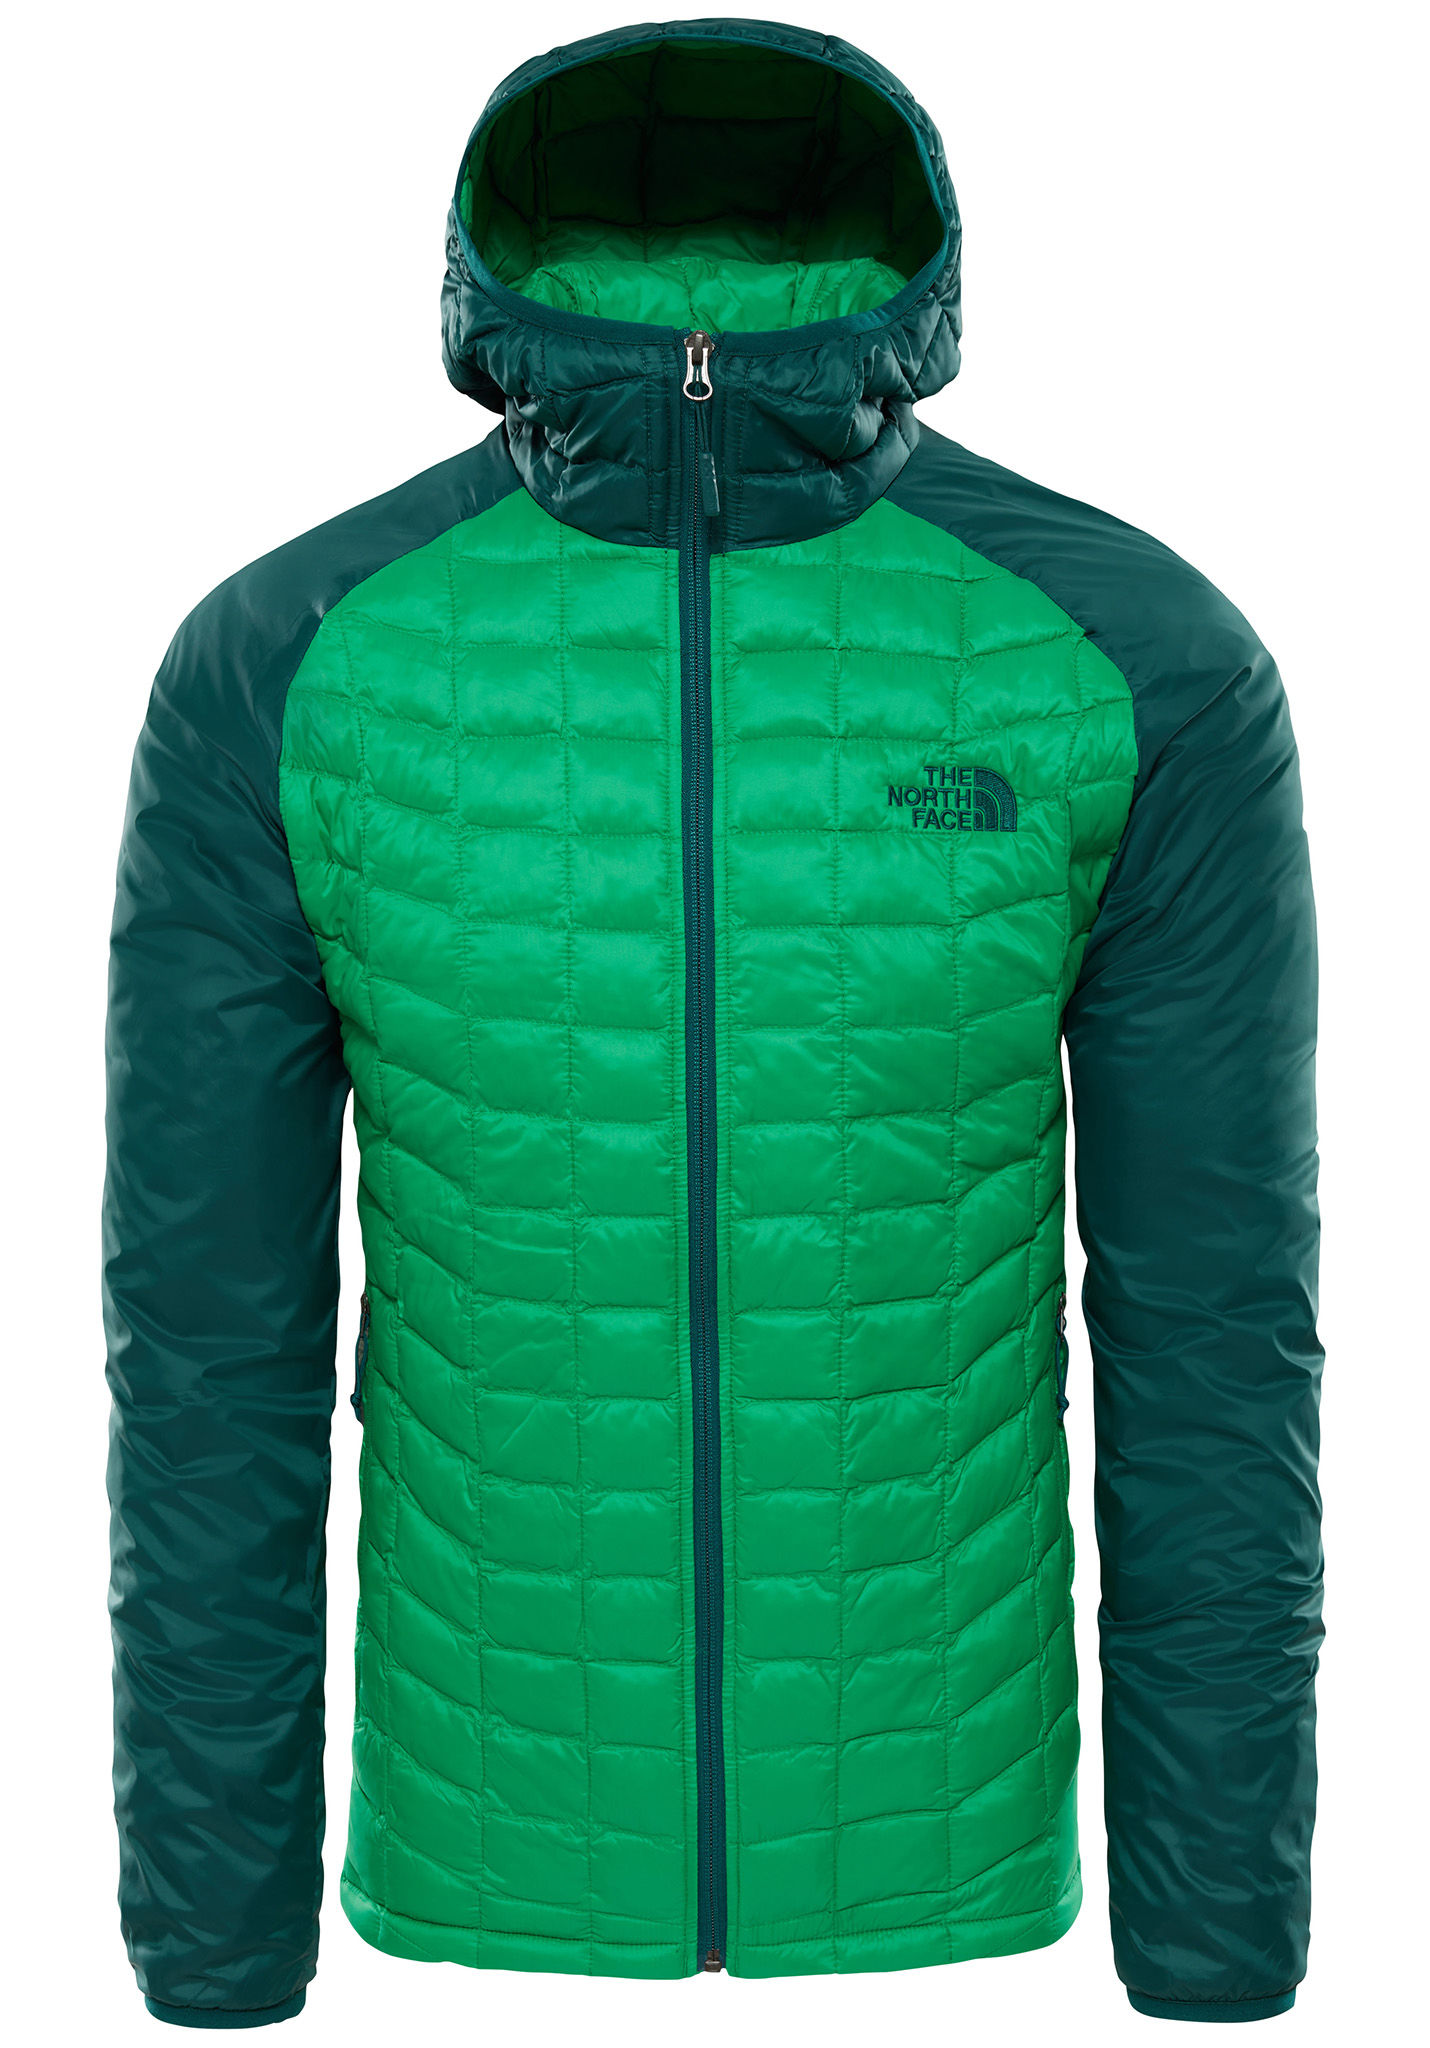 37b3f1fa3 THE NORTH FACE Thermoball Sport - Outdoor Jacket for Men - Green